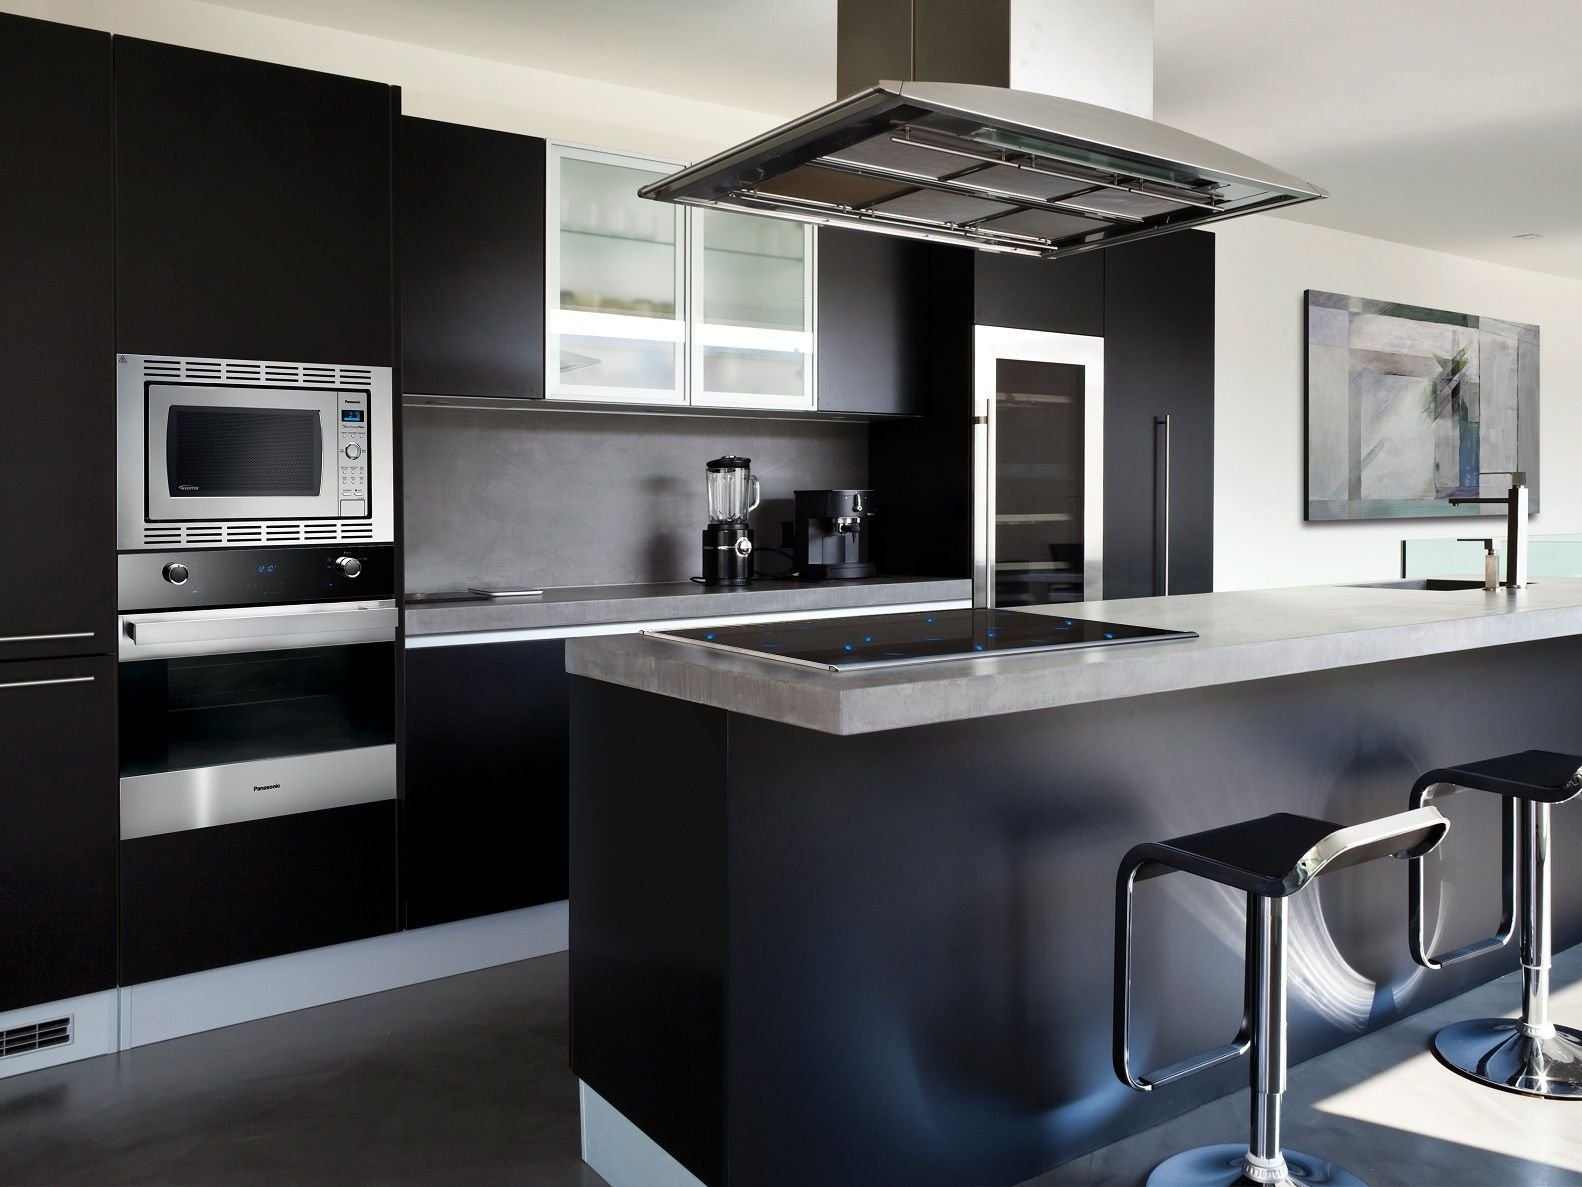 Interior Black Matte Kitchen Cabinet With Concrete Contertop Electric Stove And Oven Built In Dark